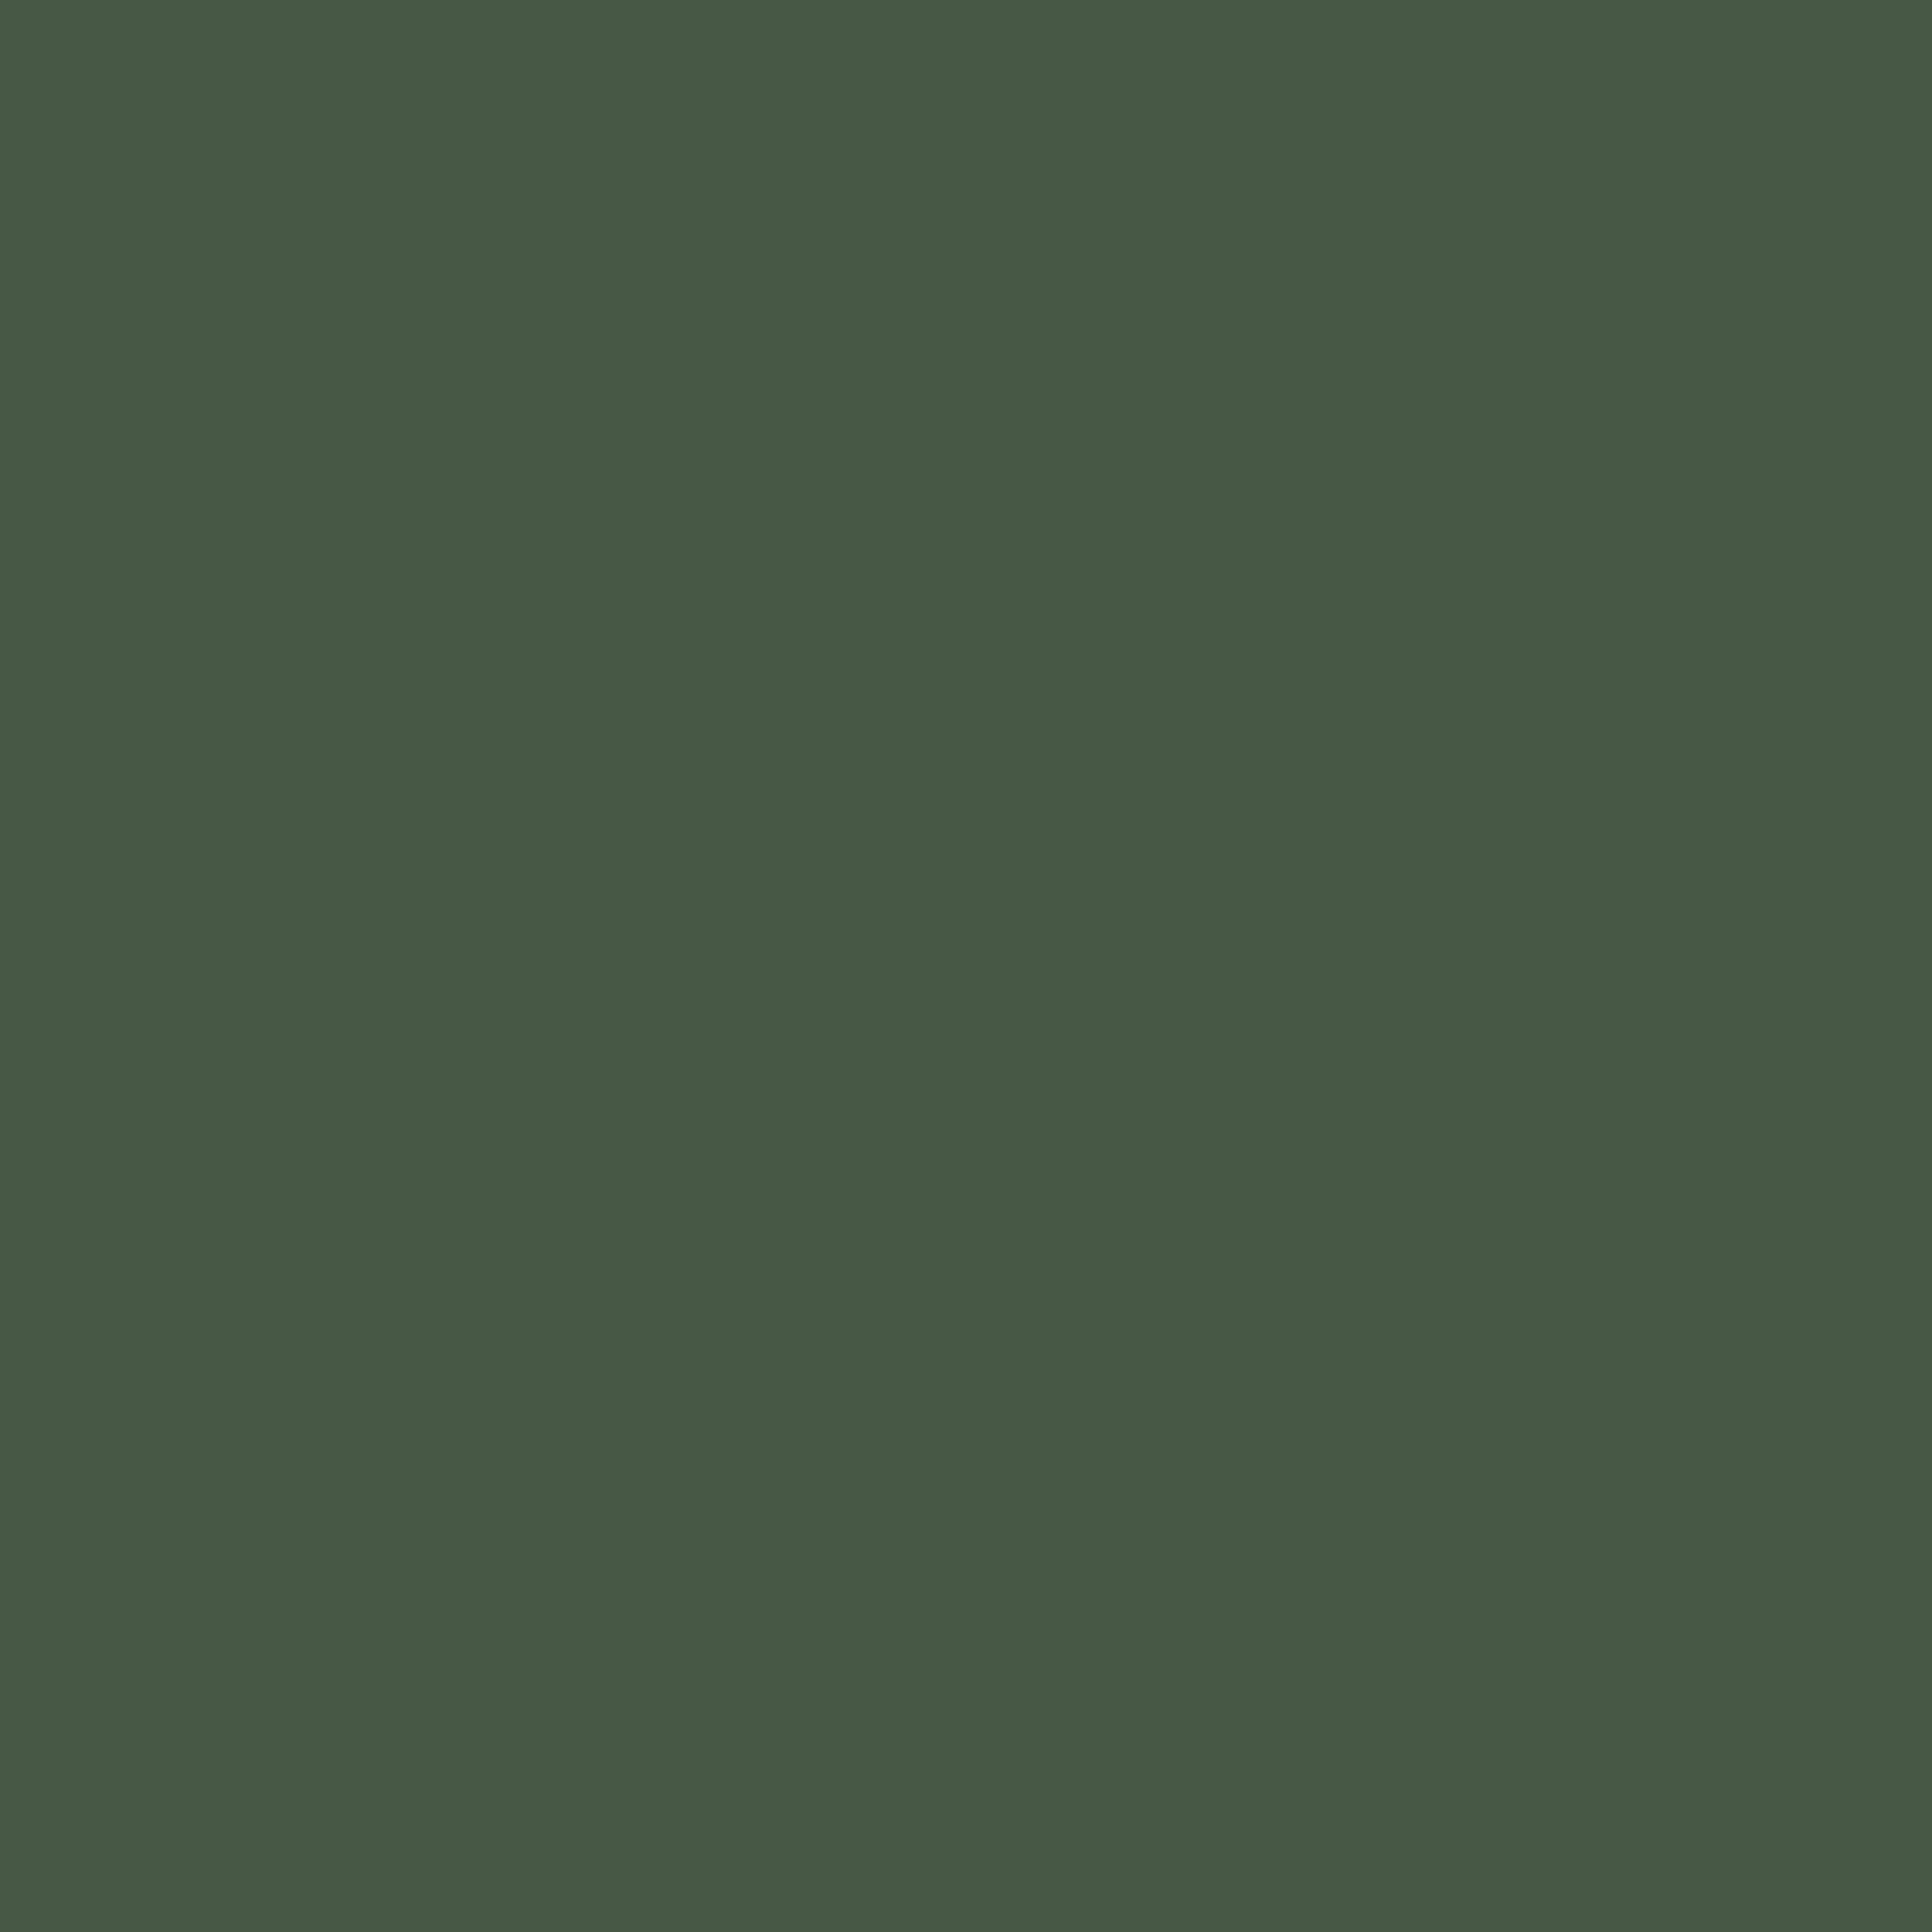 3600x3600 Gray-asparagus Solid Color Background